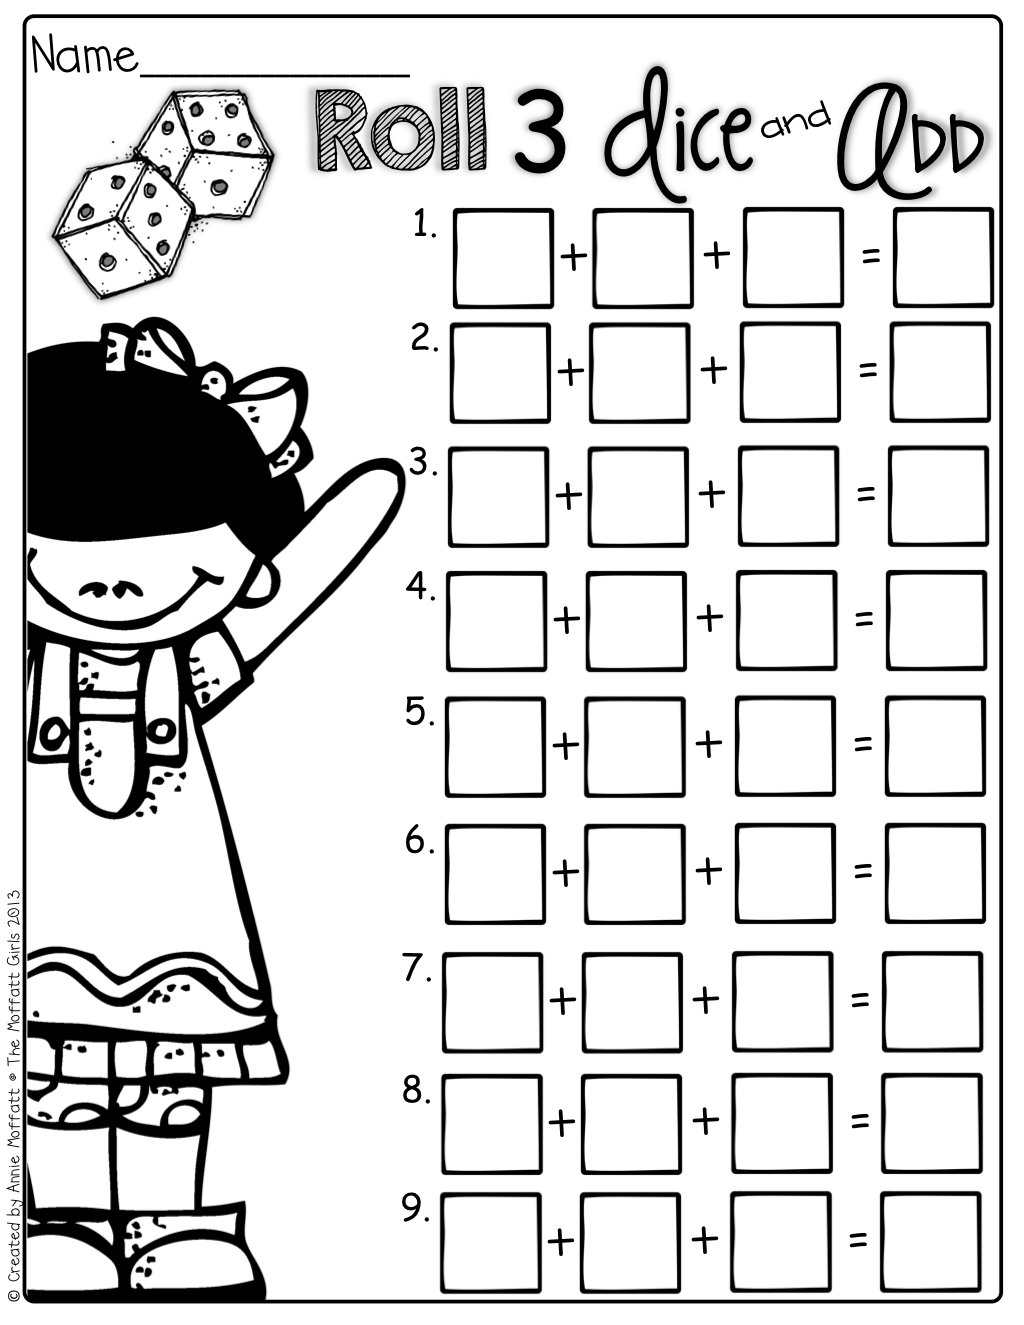 hight resolution of Parade Math Worksheets   Printable Worksheets and Activities for Teachers